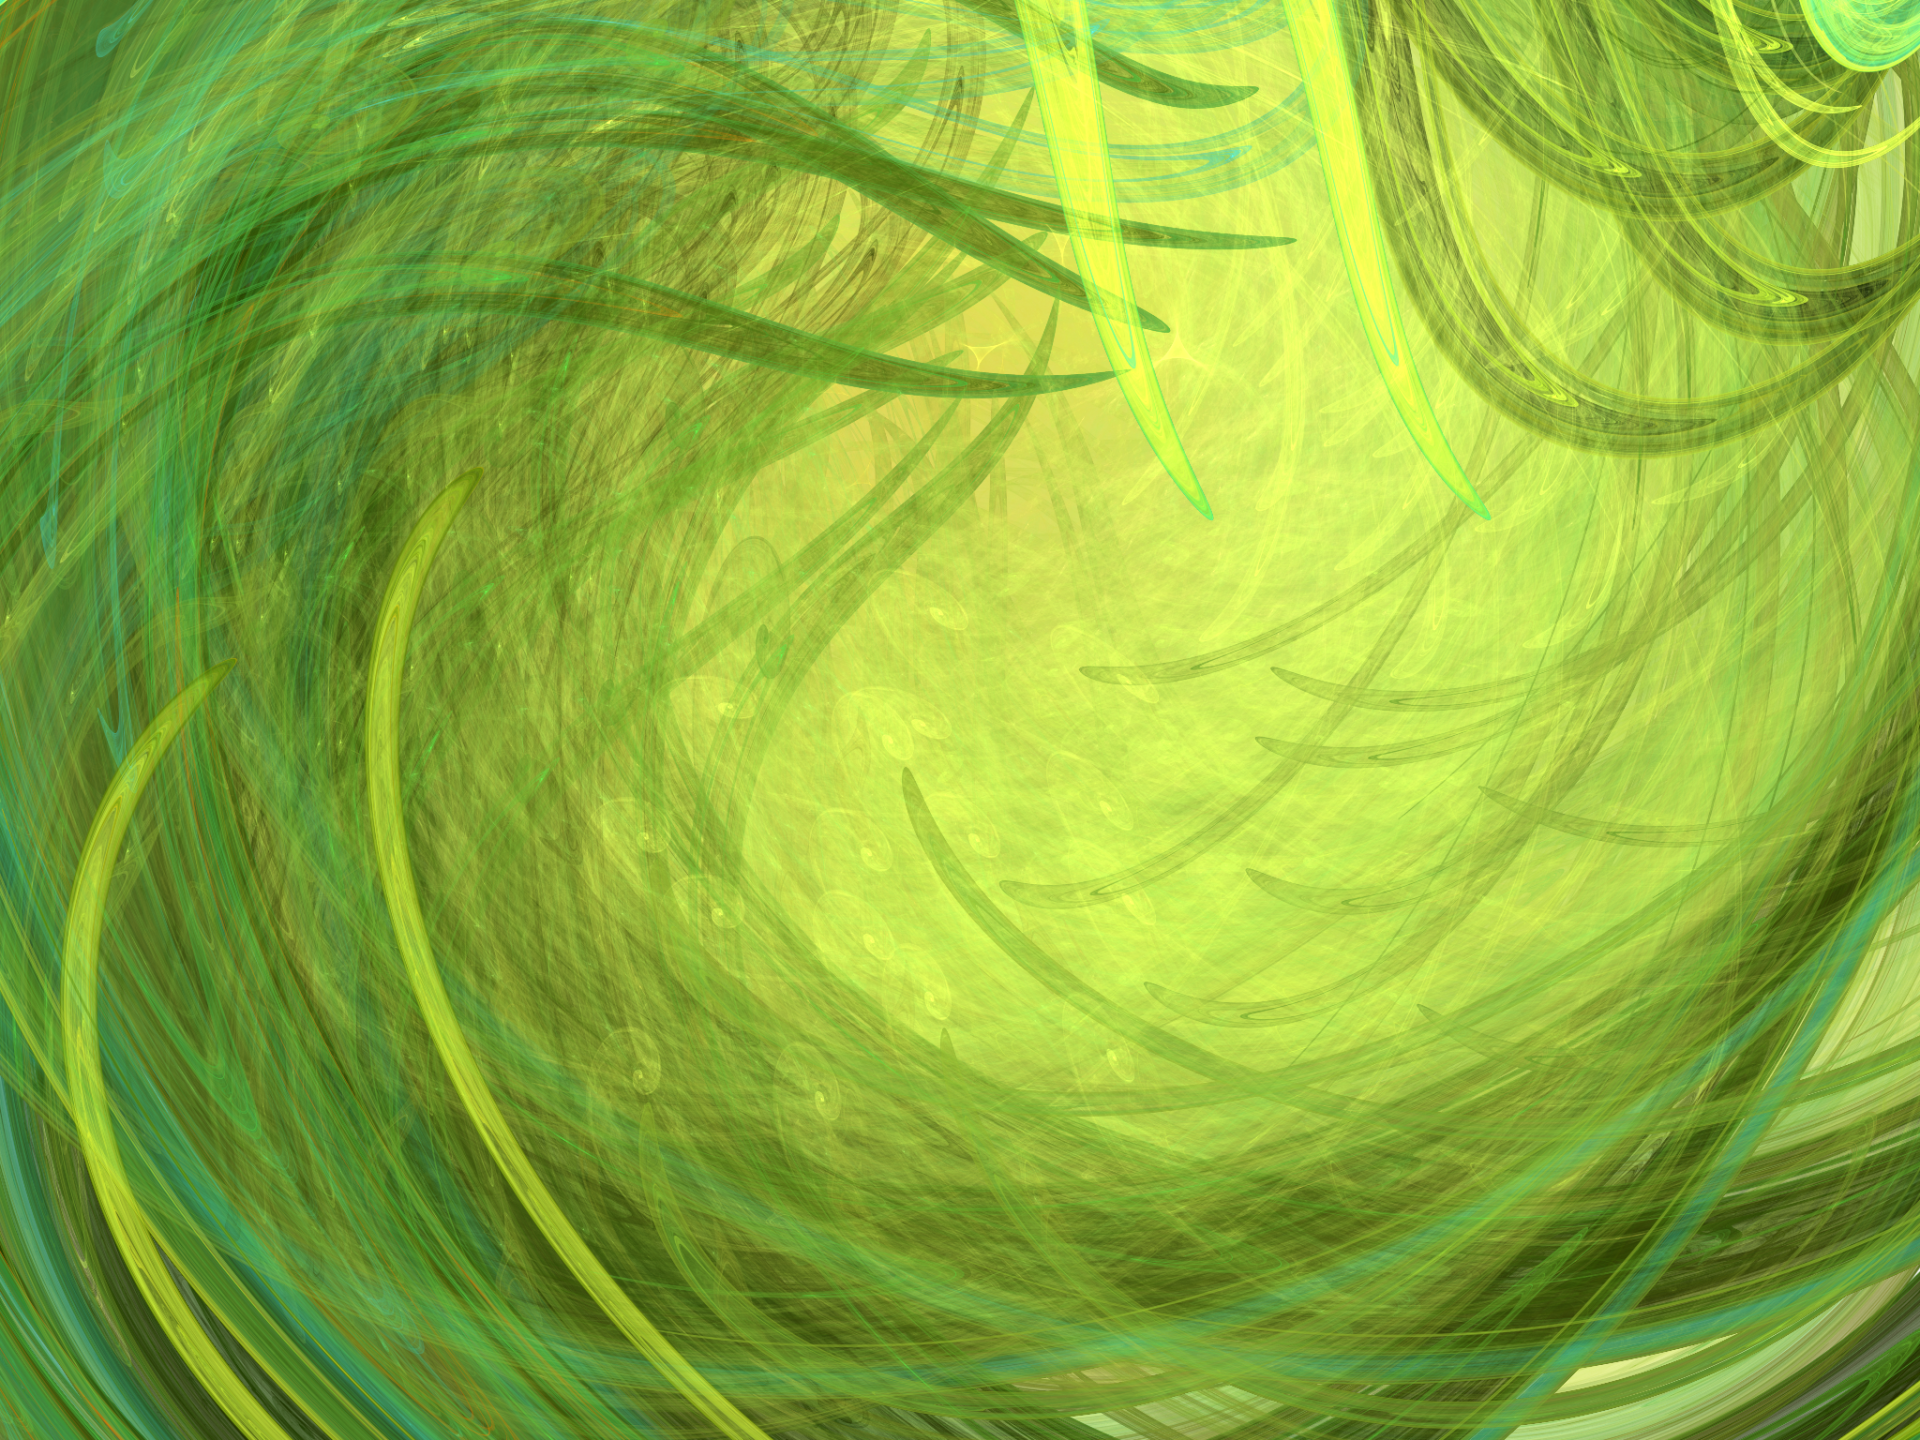 Abstract - Fractal  Abstract Apophysis (software) 3D Green Digital Art Grass Wallpaper